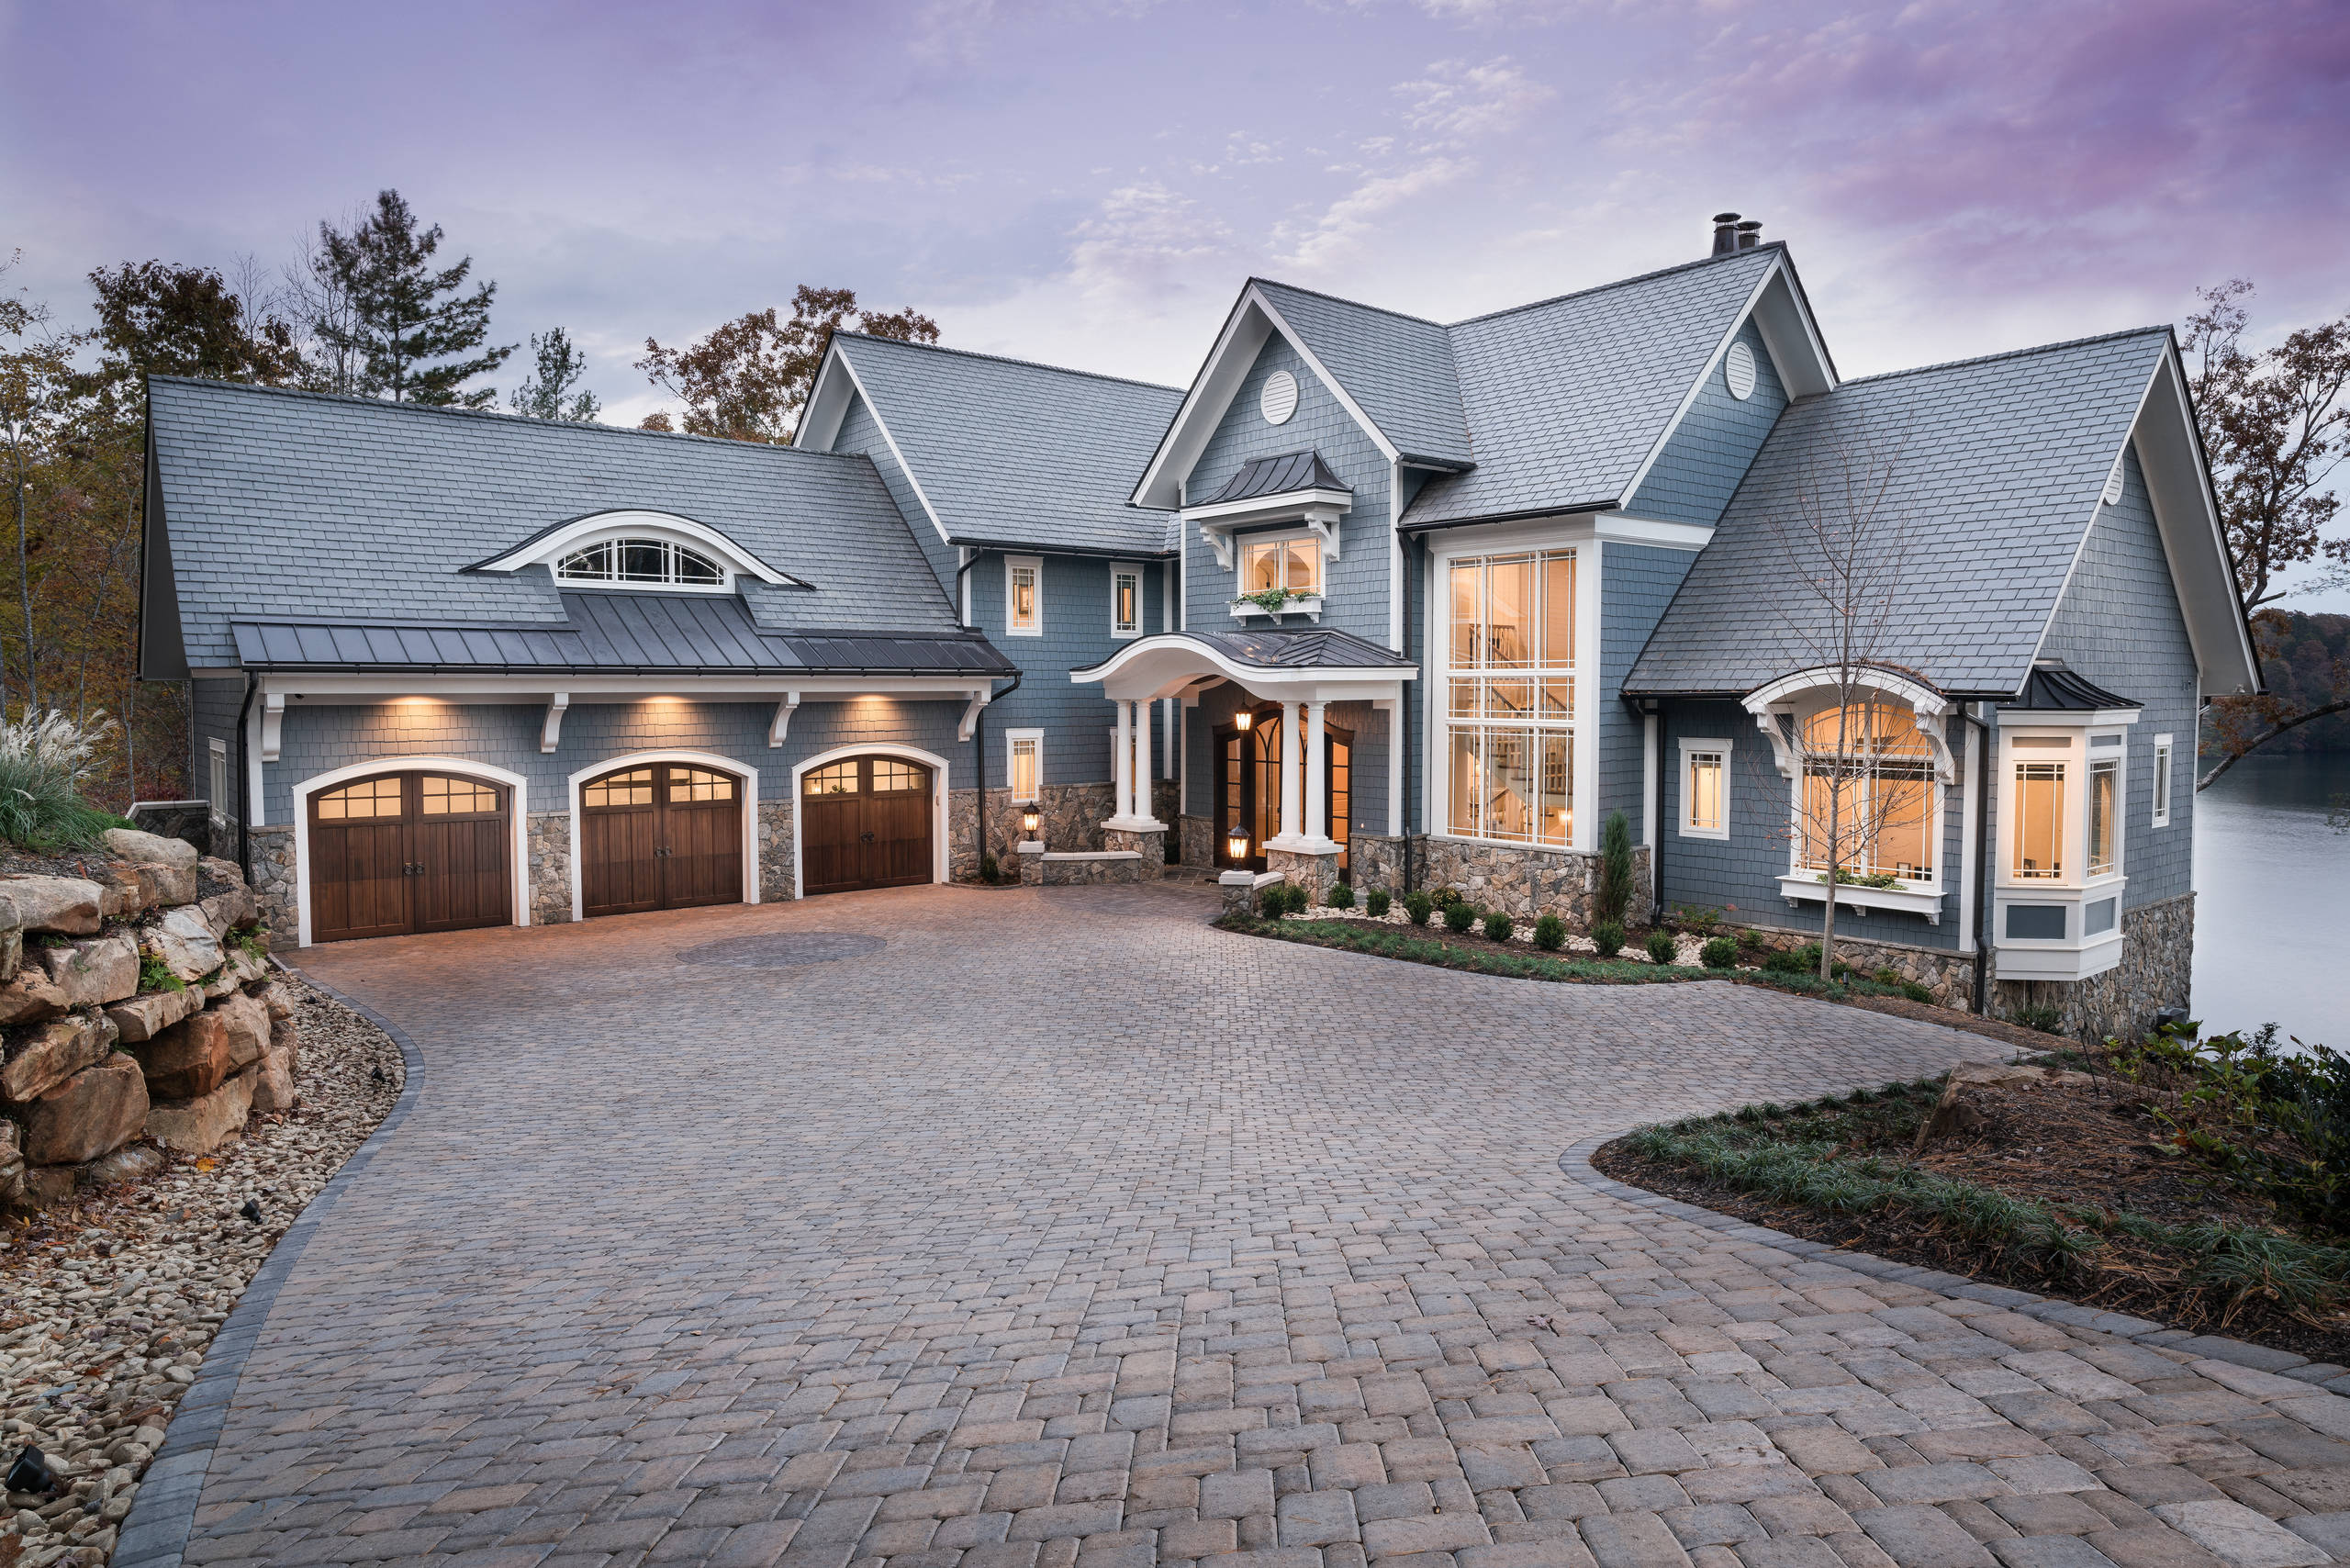 75 Beautiful Blue Exterior Home Pictures Ideas February 2021 Houzz